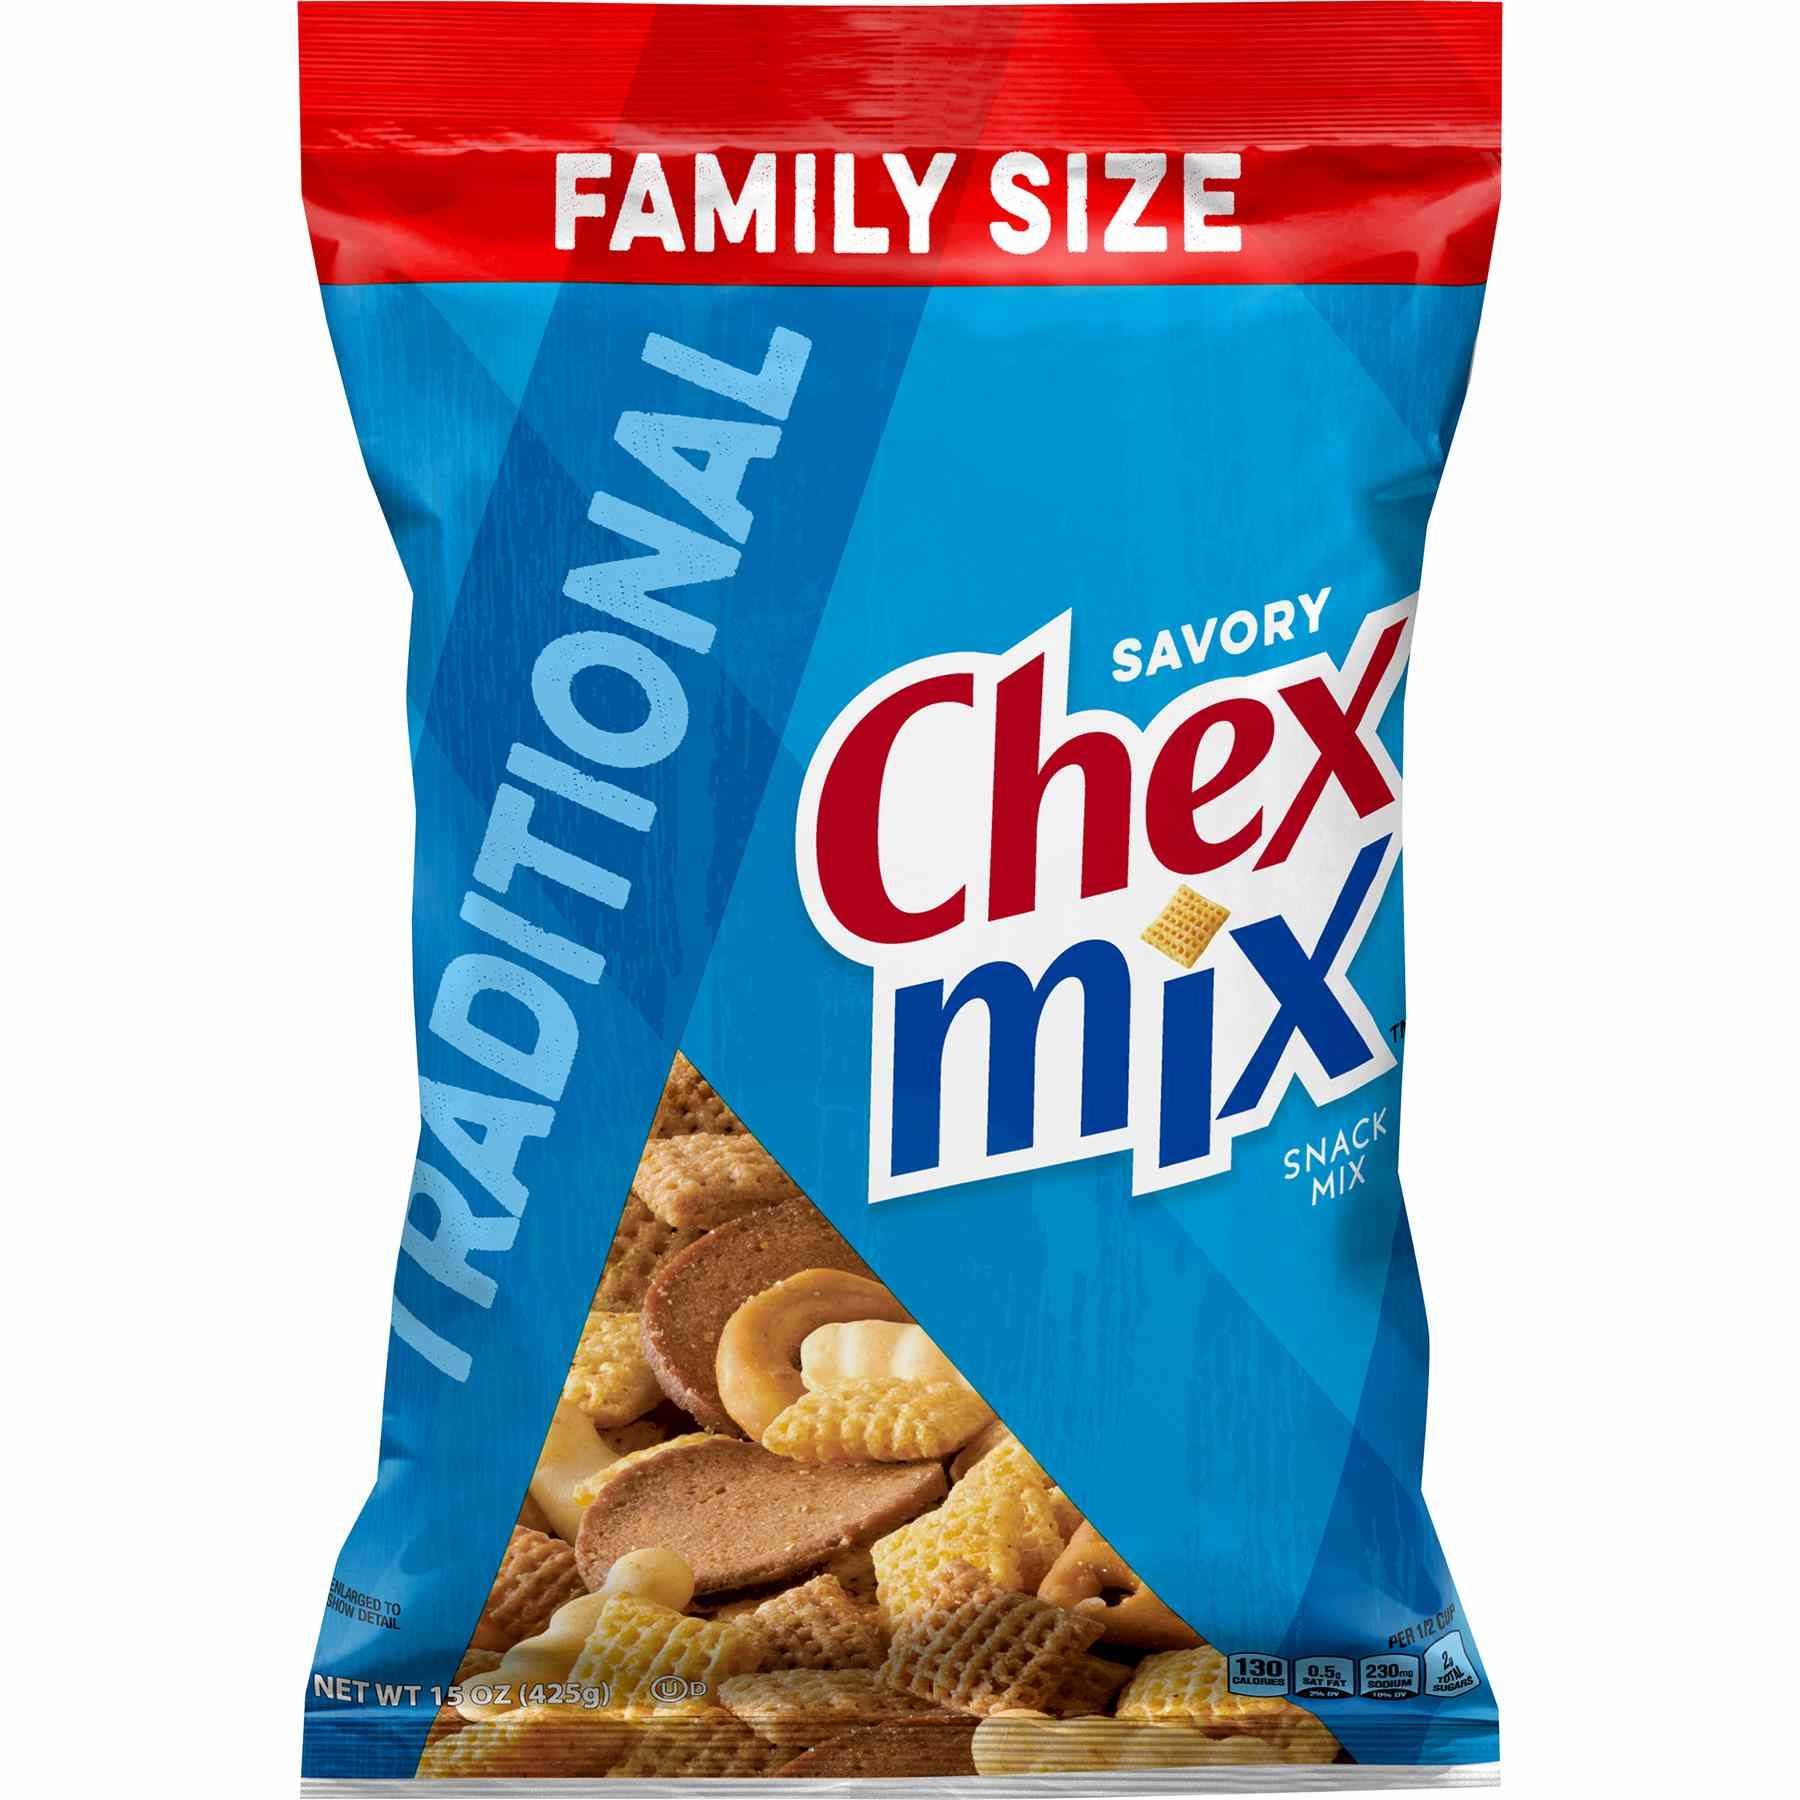 Chex Mix Snack Mix